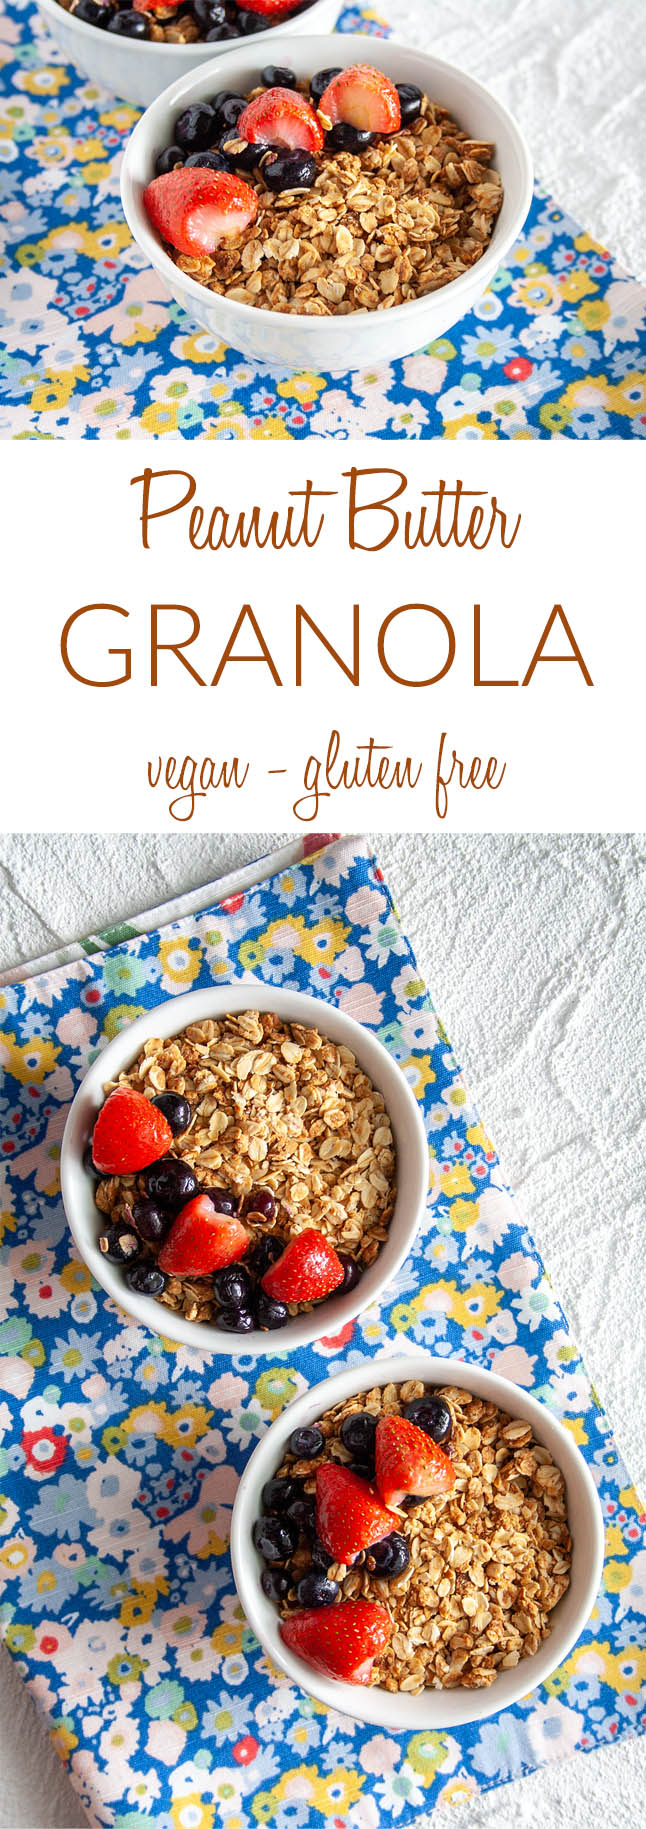 Peanut Butter Granola collage photo with text.